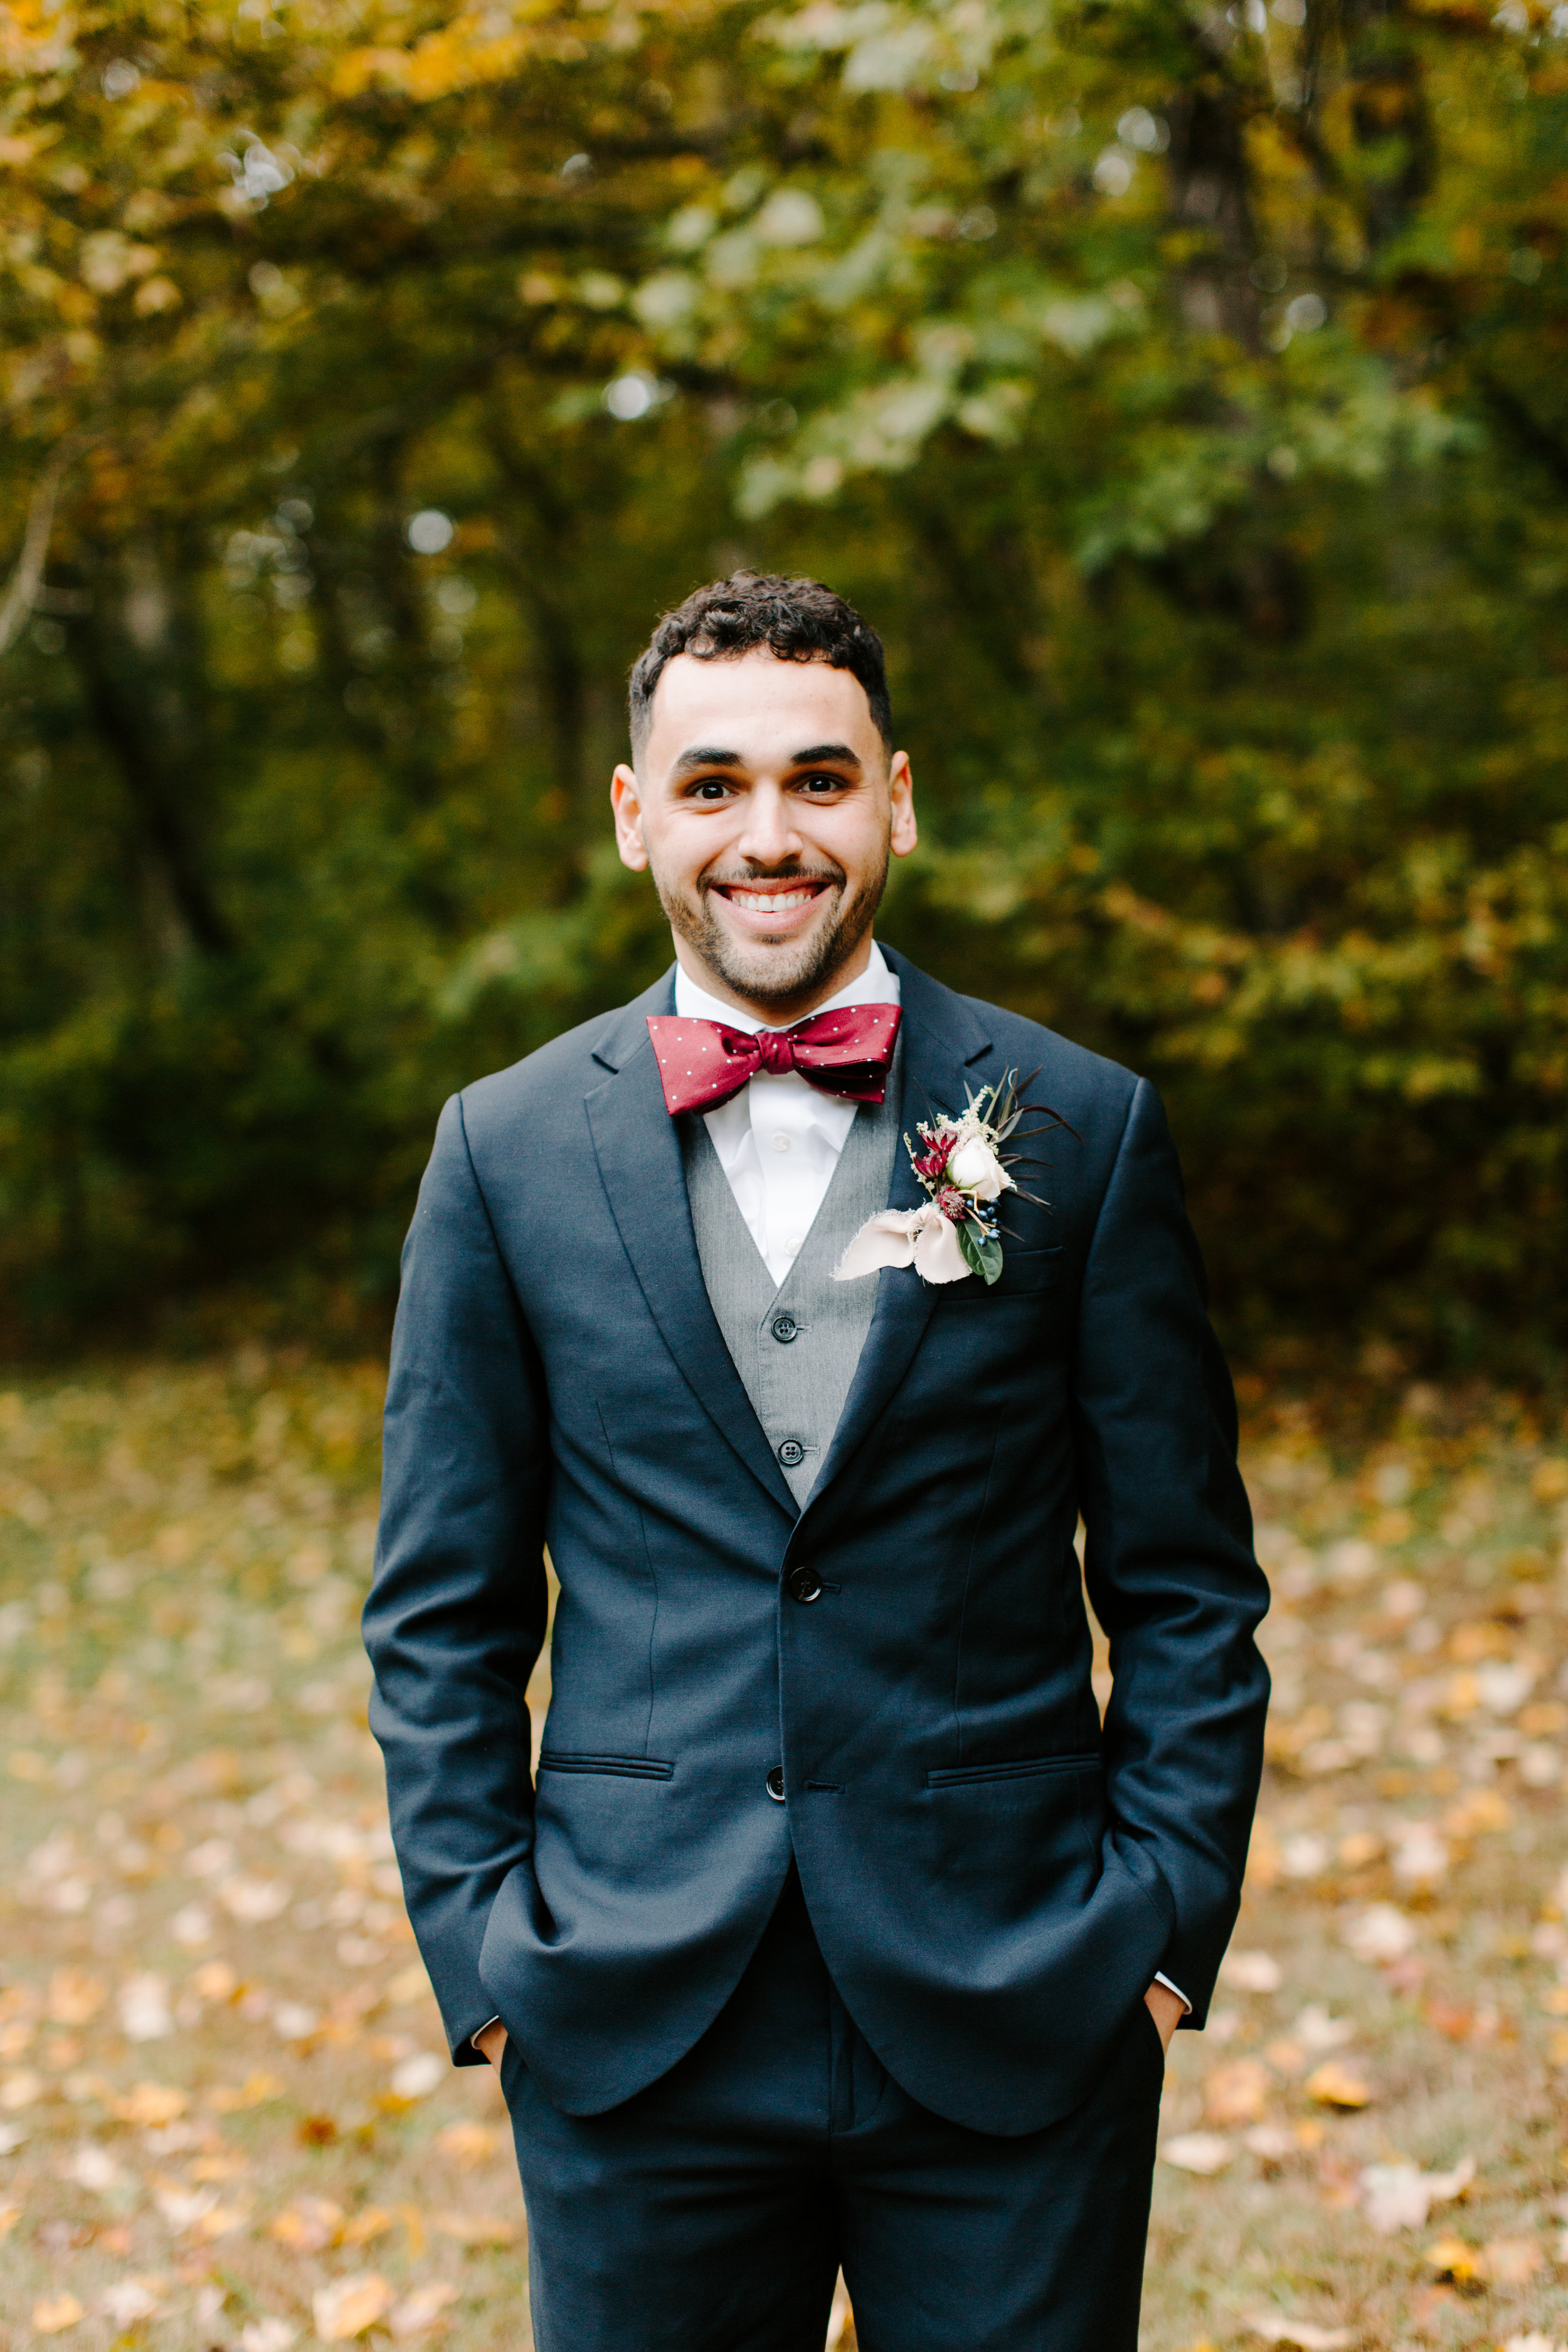 groom at his autumn wedding